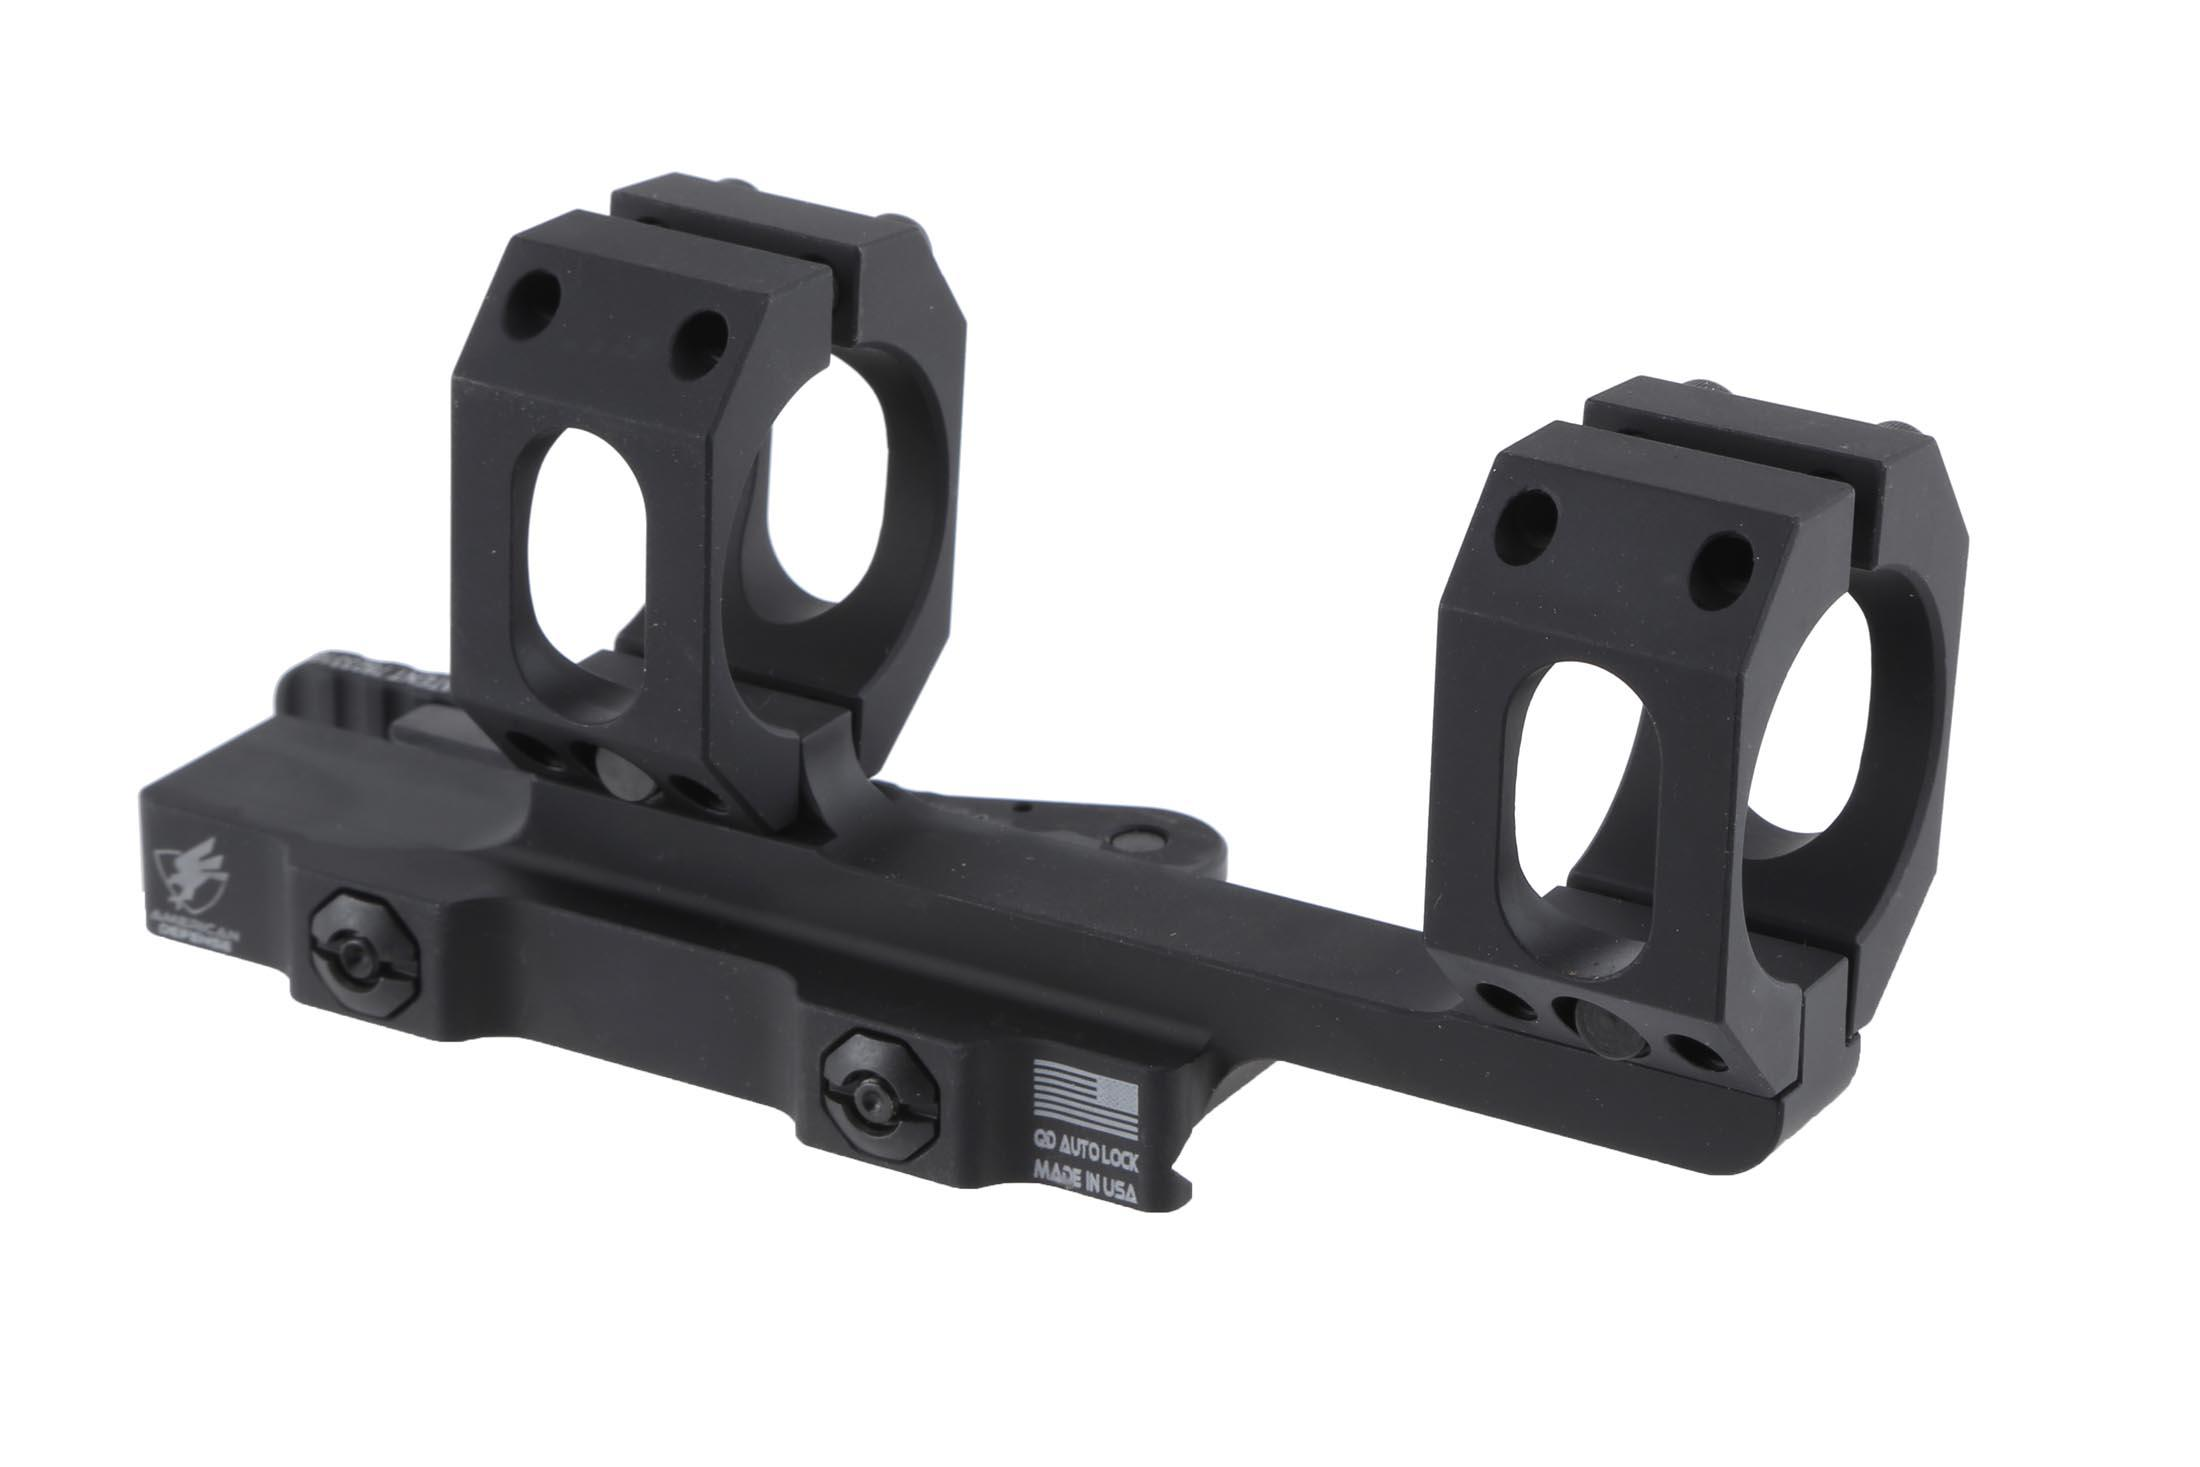 The American Defense mount for 30mm scopes features return to zero functionality